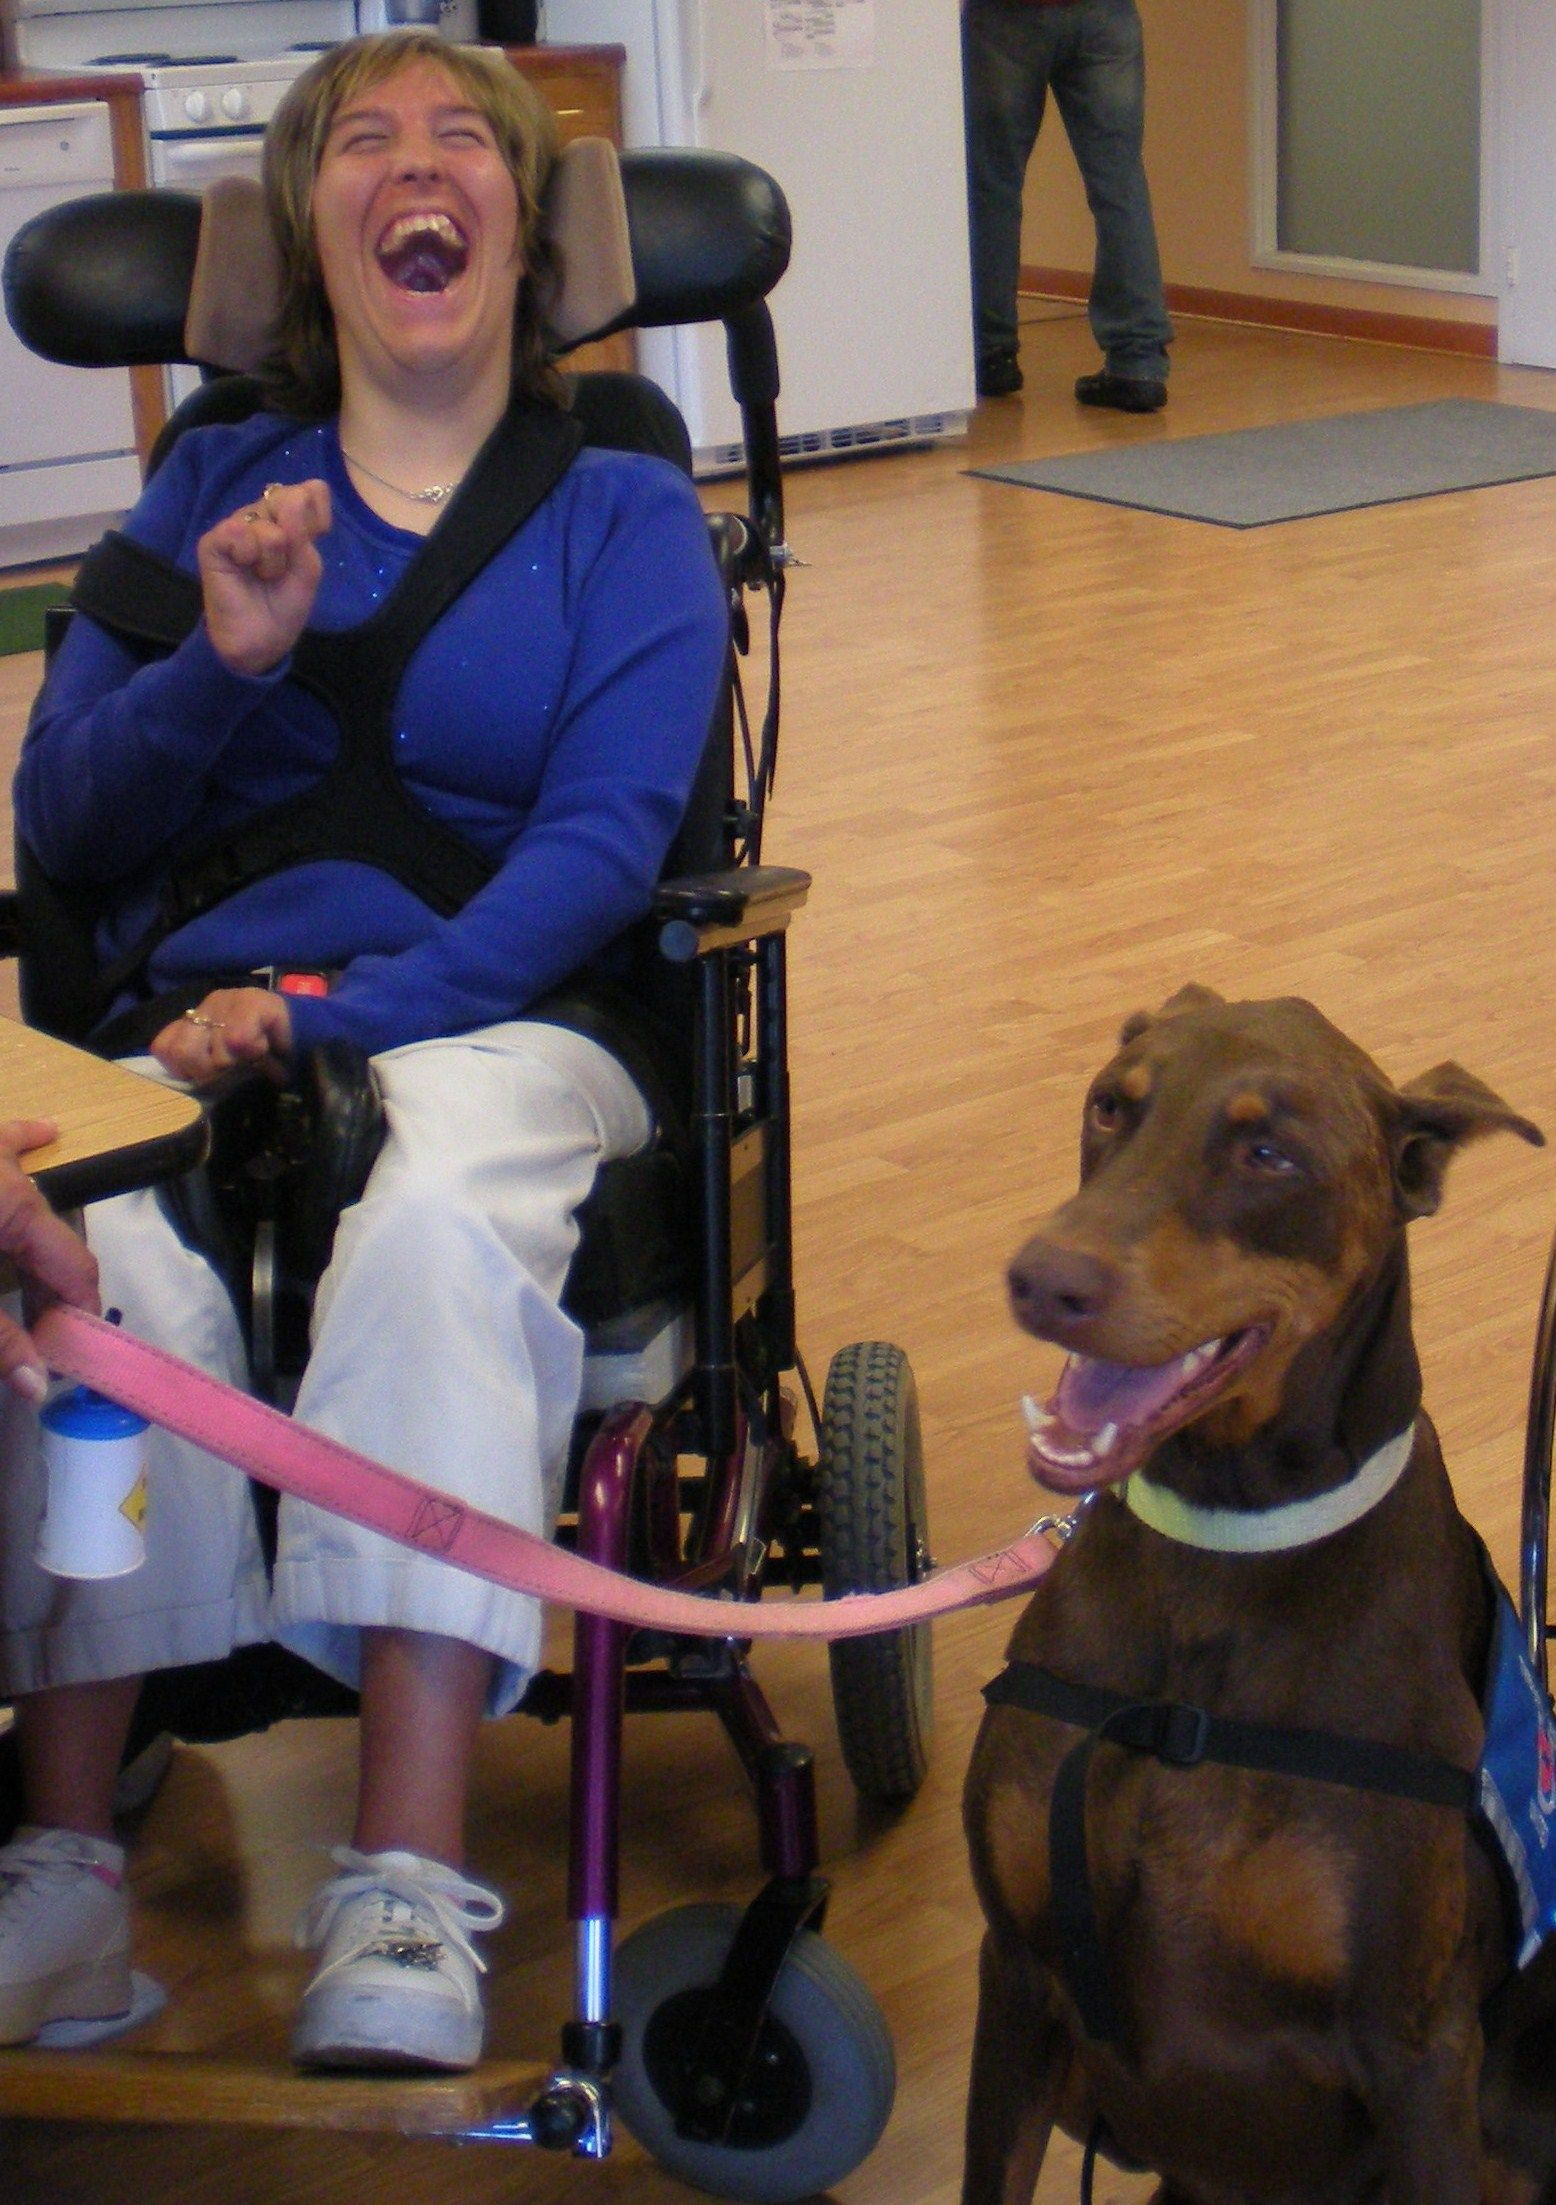 I will have my own red doberman therapy dog but i will do